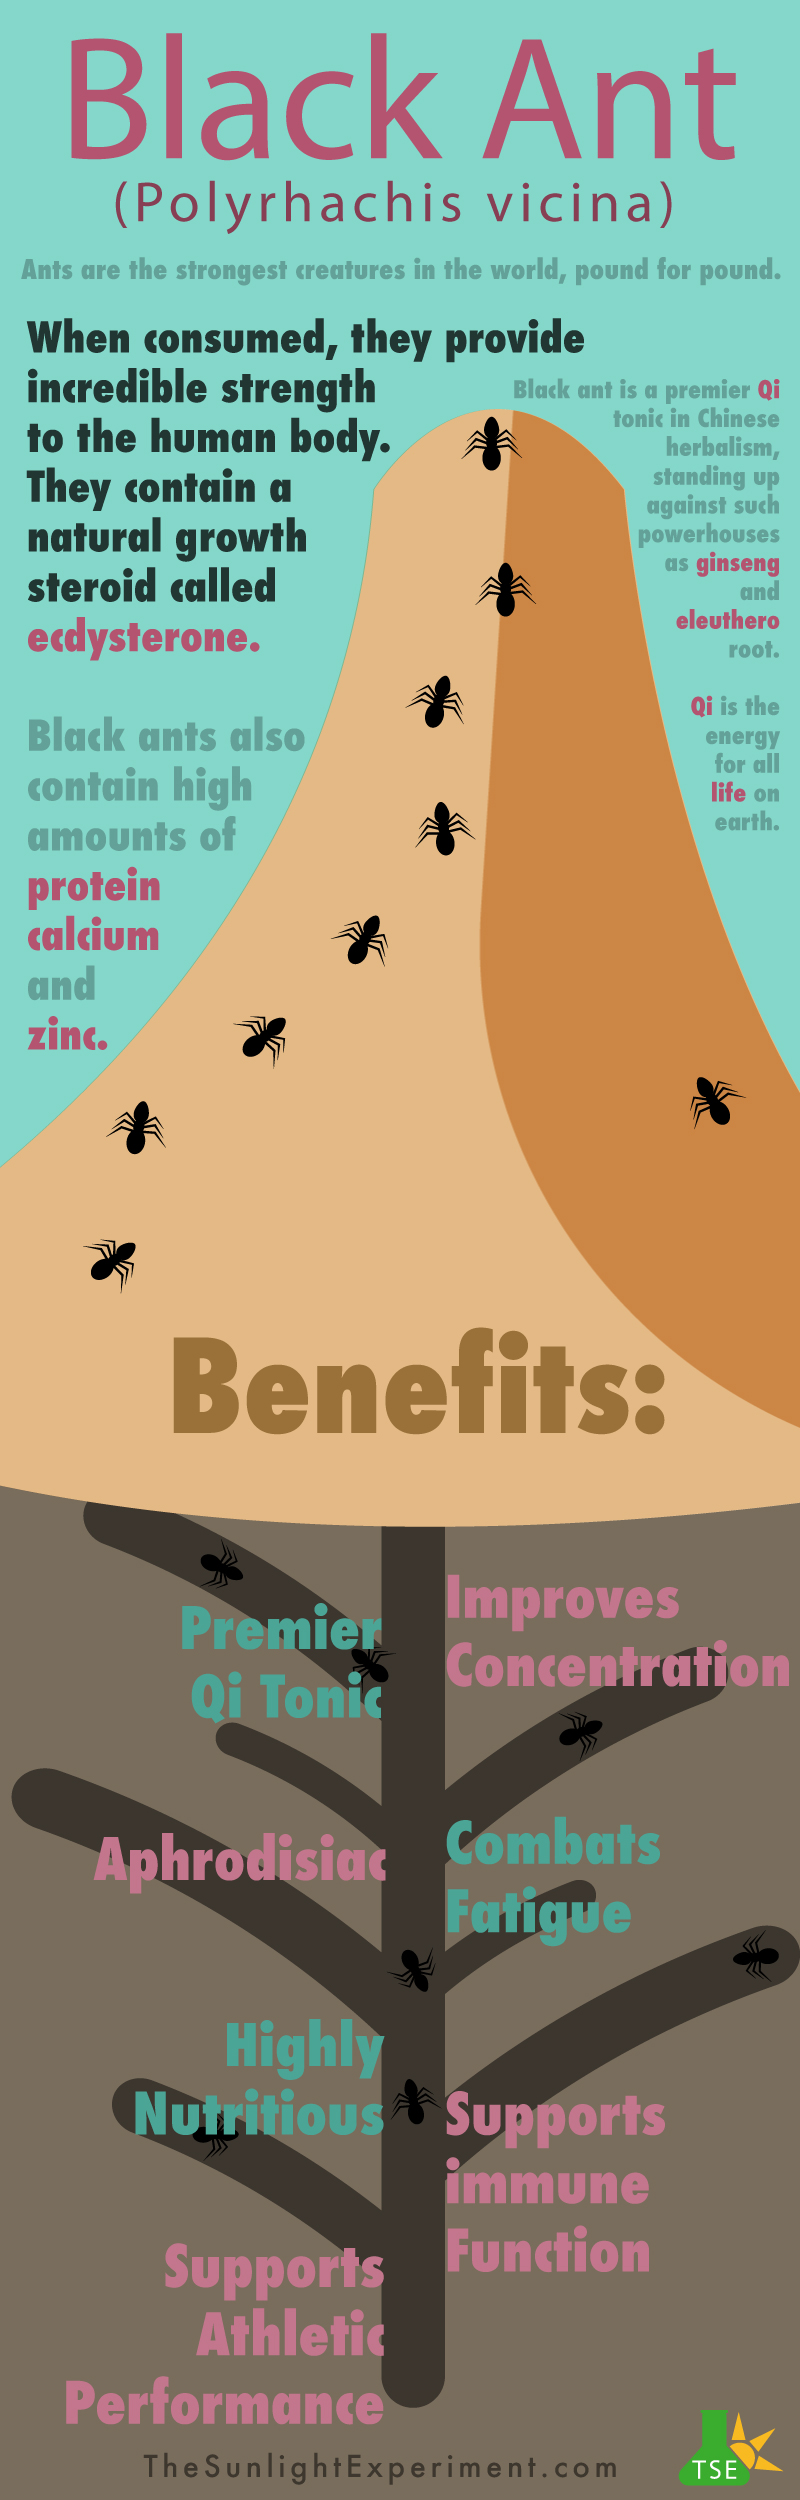 Black ant infographic